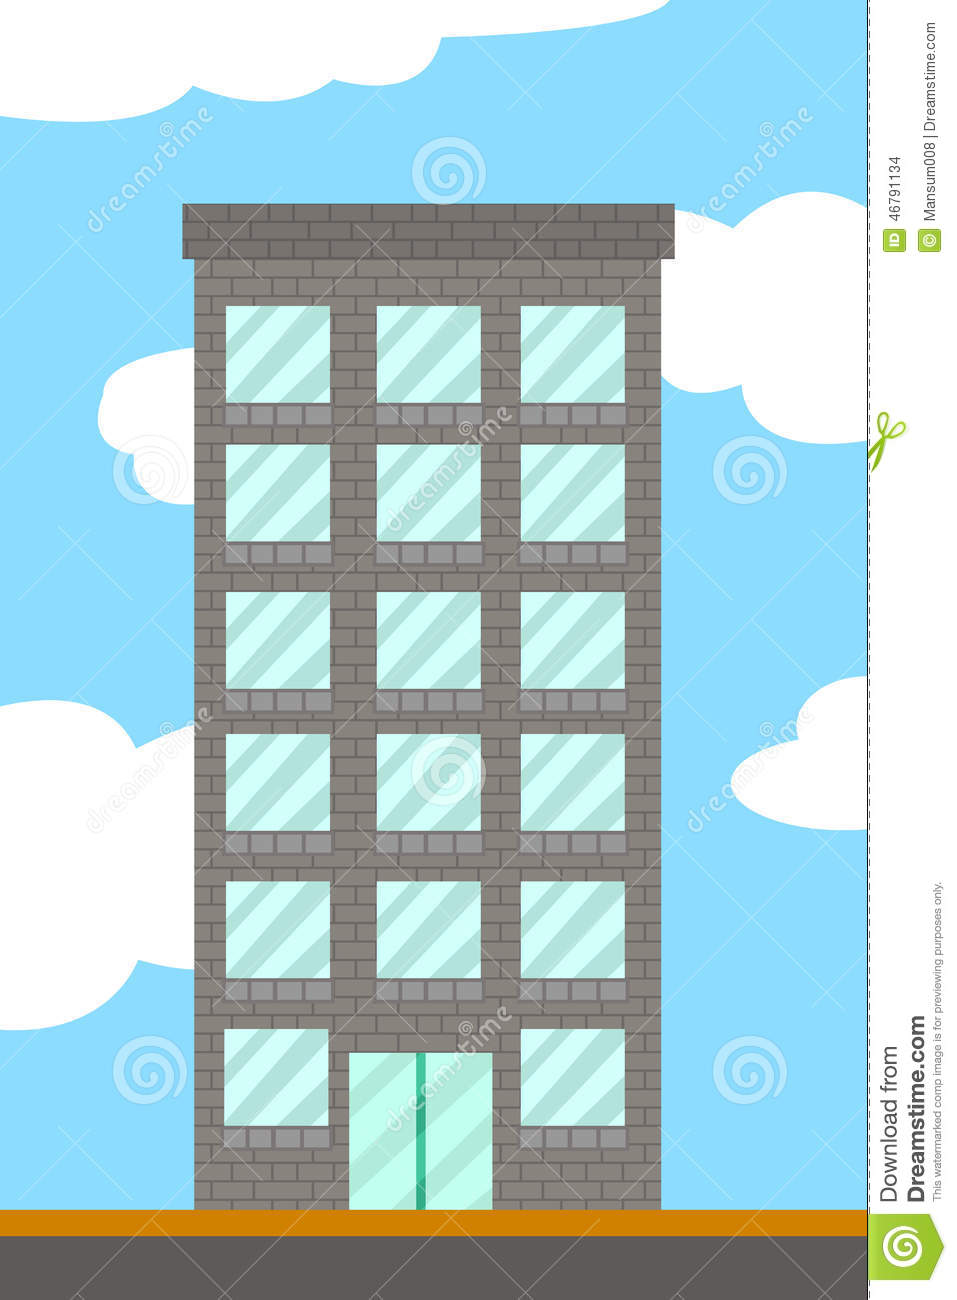 Building Cartoon Stock Illustration - Image: 46791134